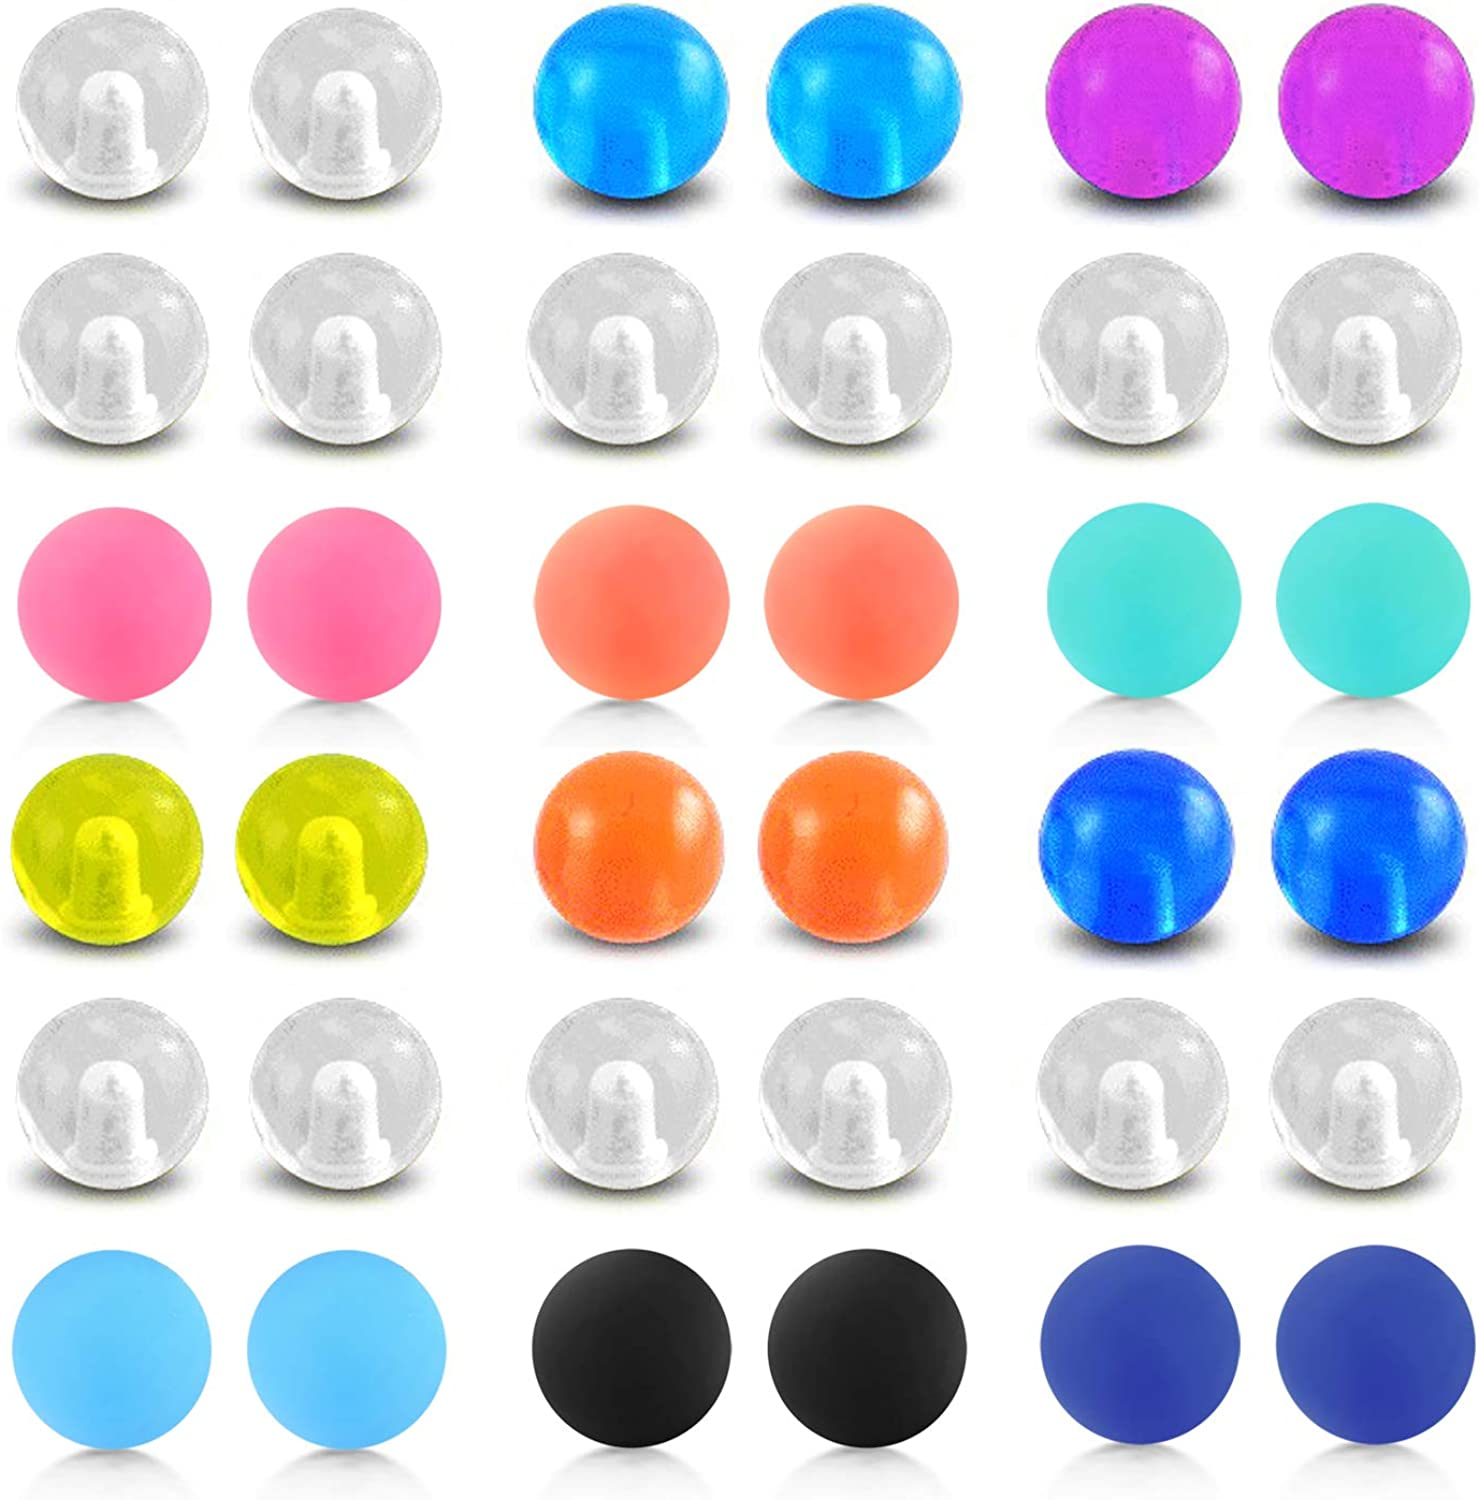 D.Bella Stainless Steel /& Clear Acrylic Replacement Balls Body Jewelry Piercing Barbell Parts 14G 5mm Balls for Women Men